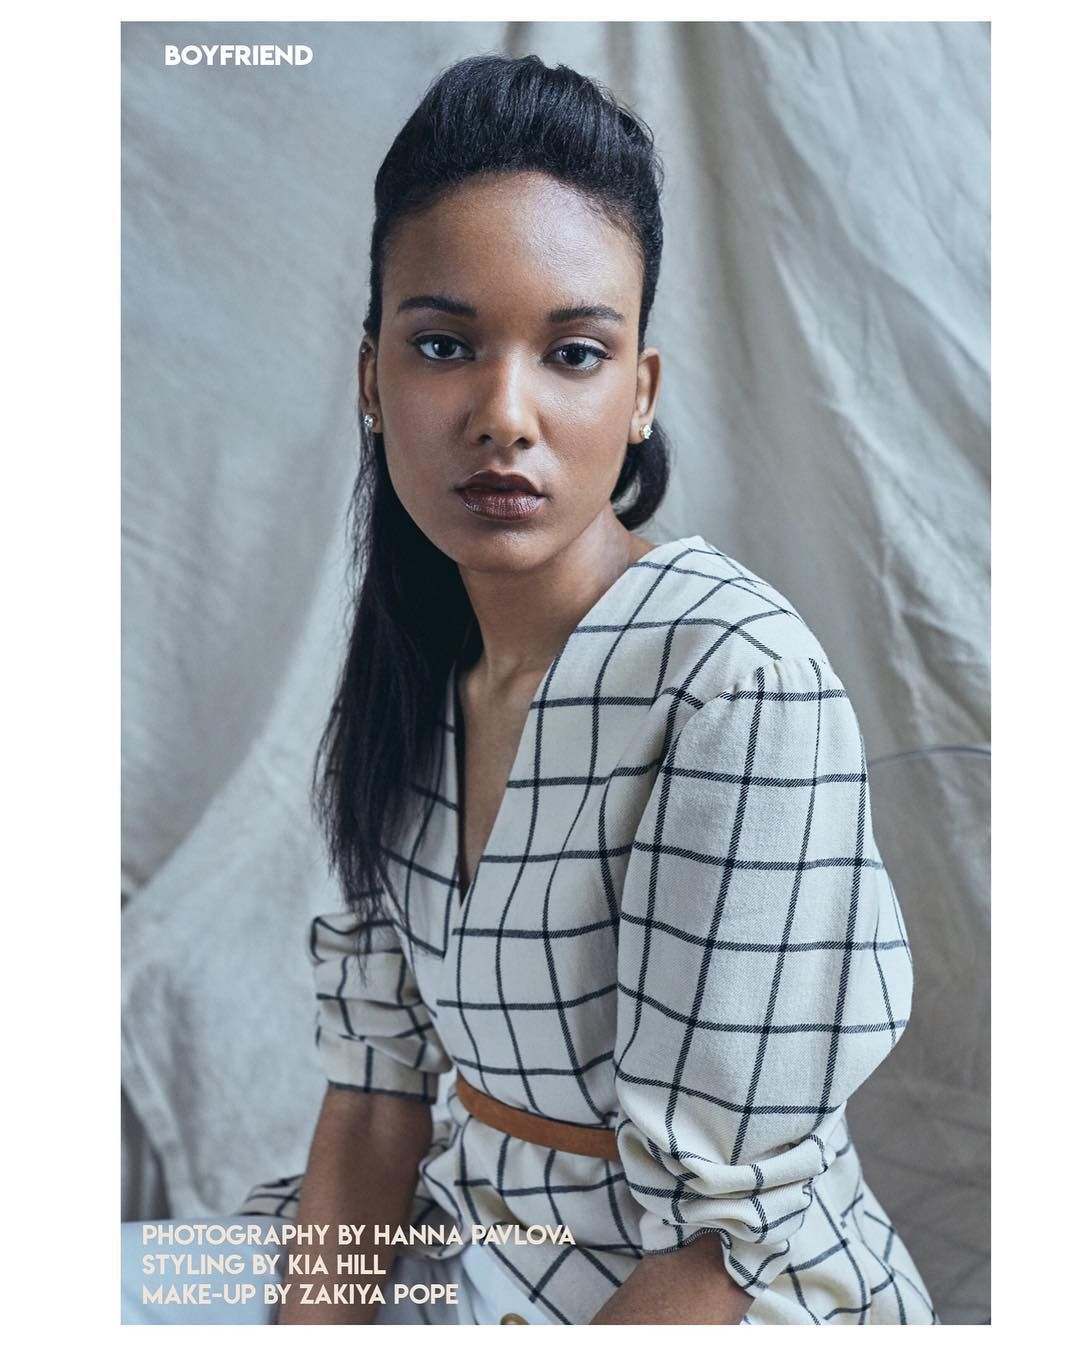 ✋ 'NO SCRUBS' Online Exclusive for @boyfriend.magazine ⠀⠀ Photography by @hannapavlova Styling by @kiabeeya Make-Up by @zakiya.ntisson  Full story on our website - link in bio . . .  #fashion #fashionstylist #editorial #magazine #editorialstylist #model #photoshoot #publication #fashionphotography #modelling #editorialfashion #boyfriendmag #boyfriendmagazine #editorialphotography #fashionmagazine #editorialfashionphotography #nowacceptingsubmissions #onlineexclusive